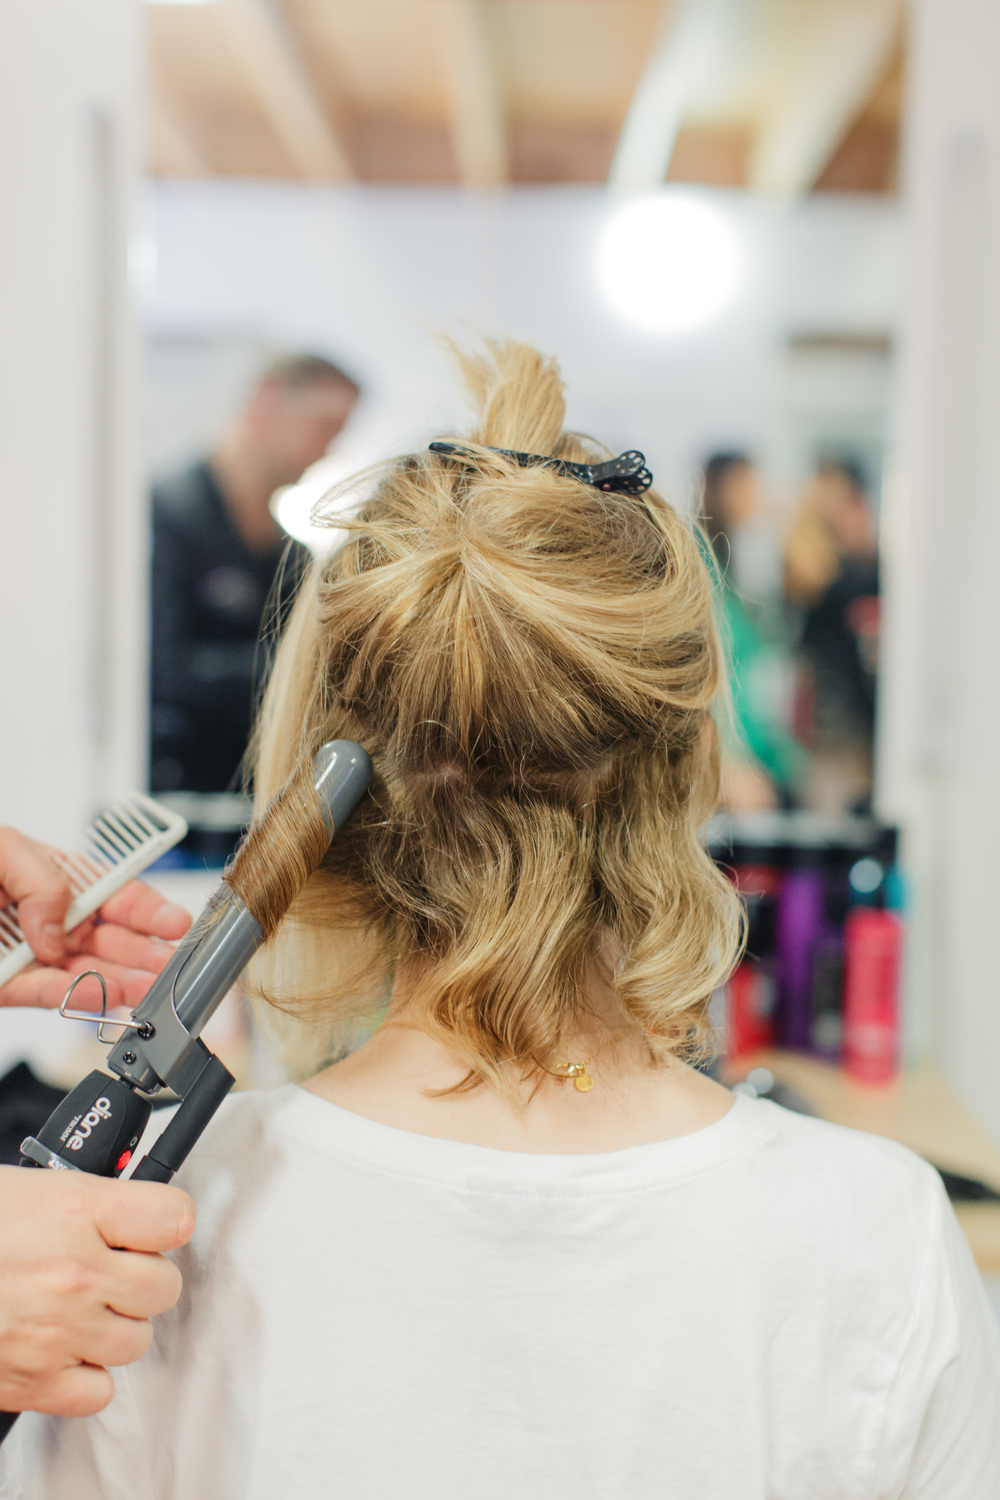 Begin sectioning off your hair and apply  Matrix StyleLink Heat Buffer  before you begin curling.